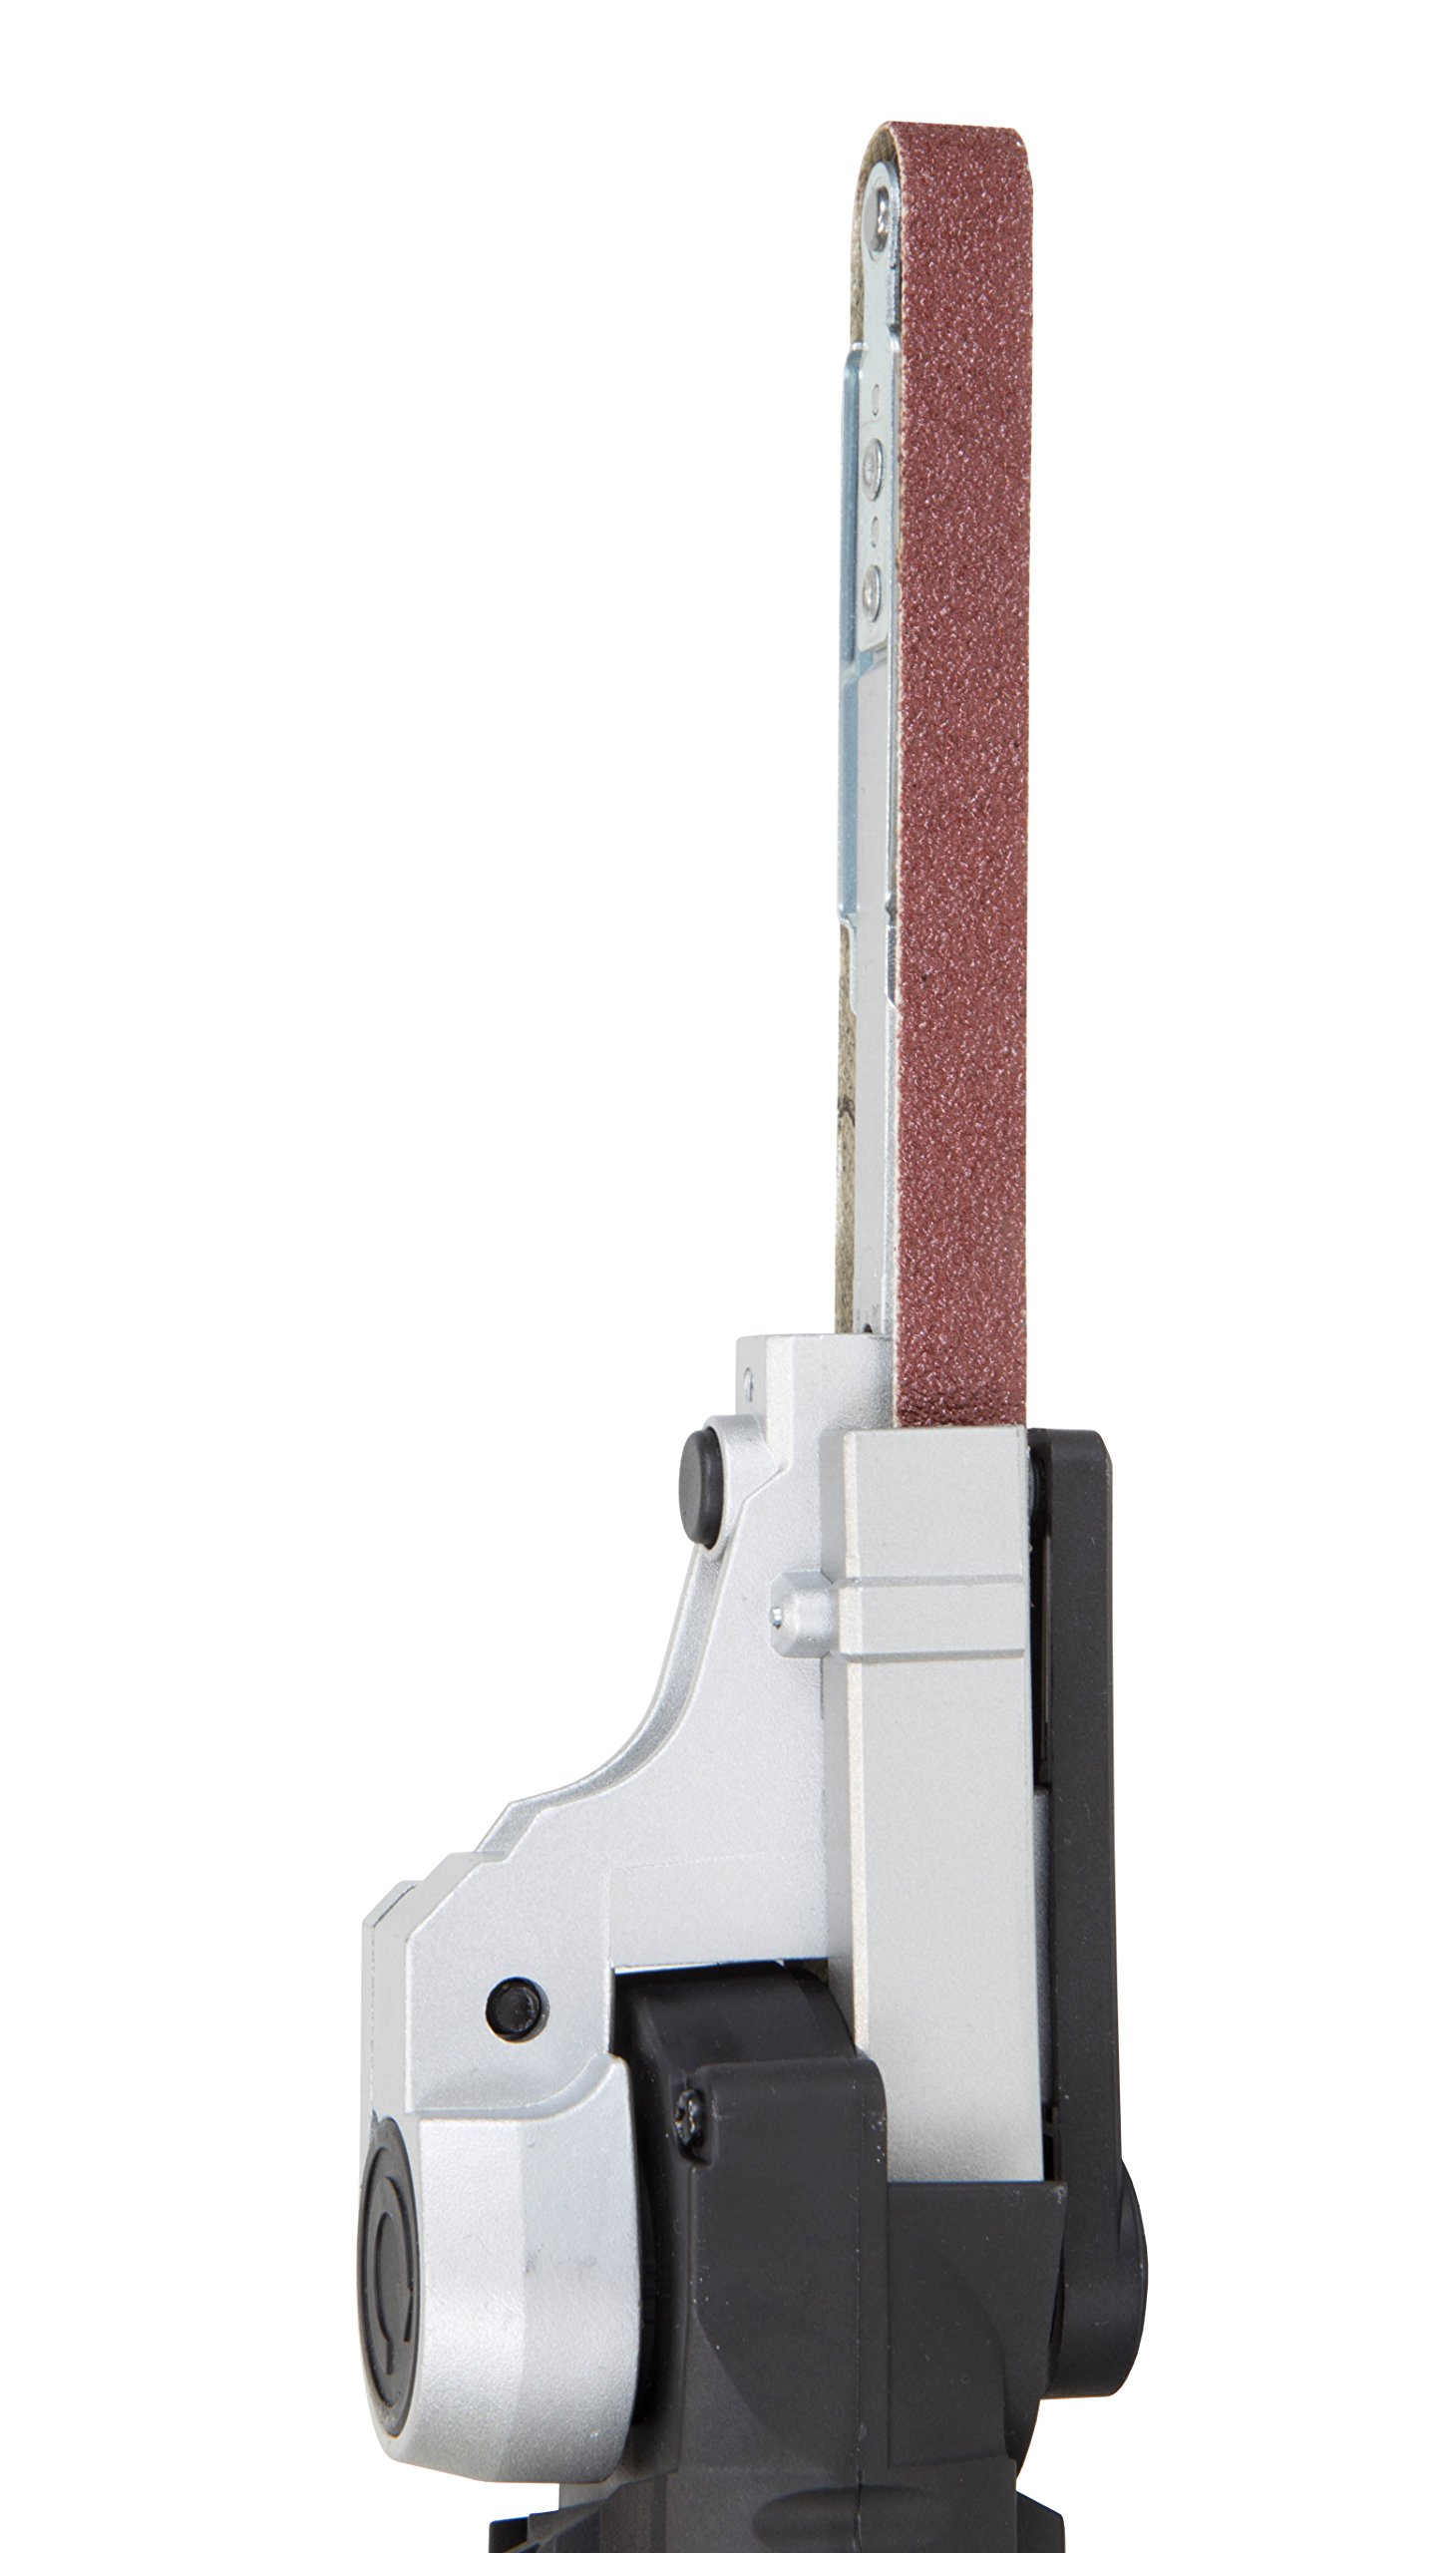 WEN 6307 Variable Speed Detailing File Sander with 1/2-by-18'' Belt by WEN (Image #3)